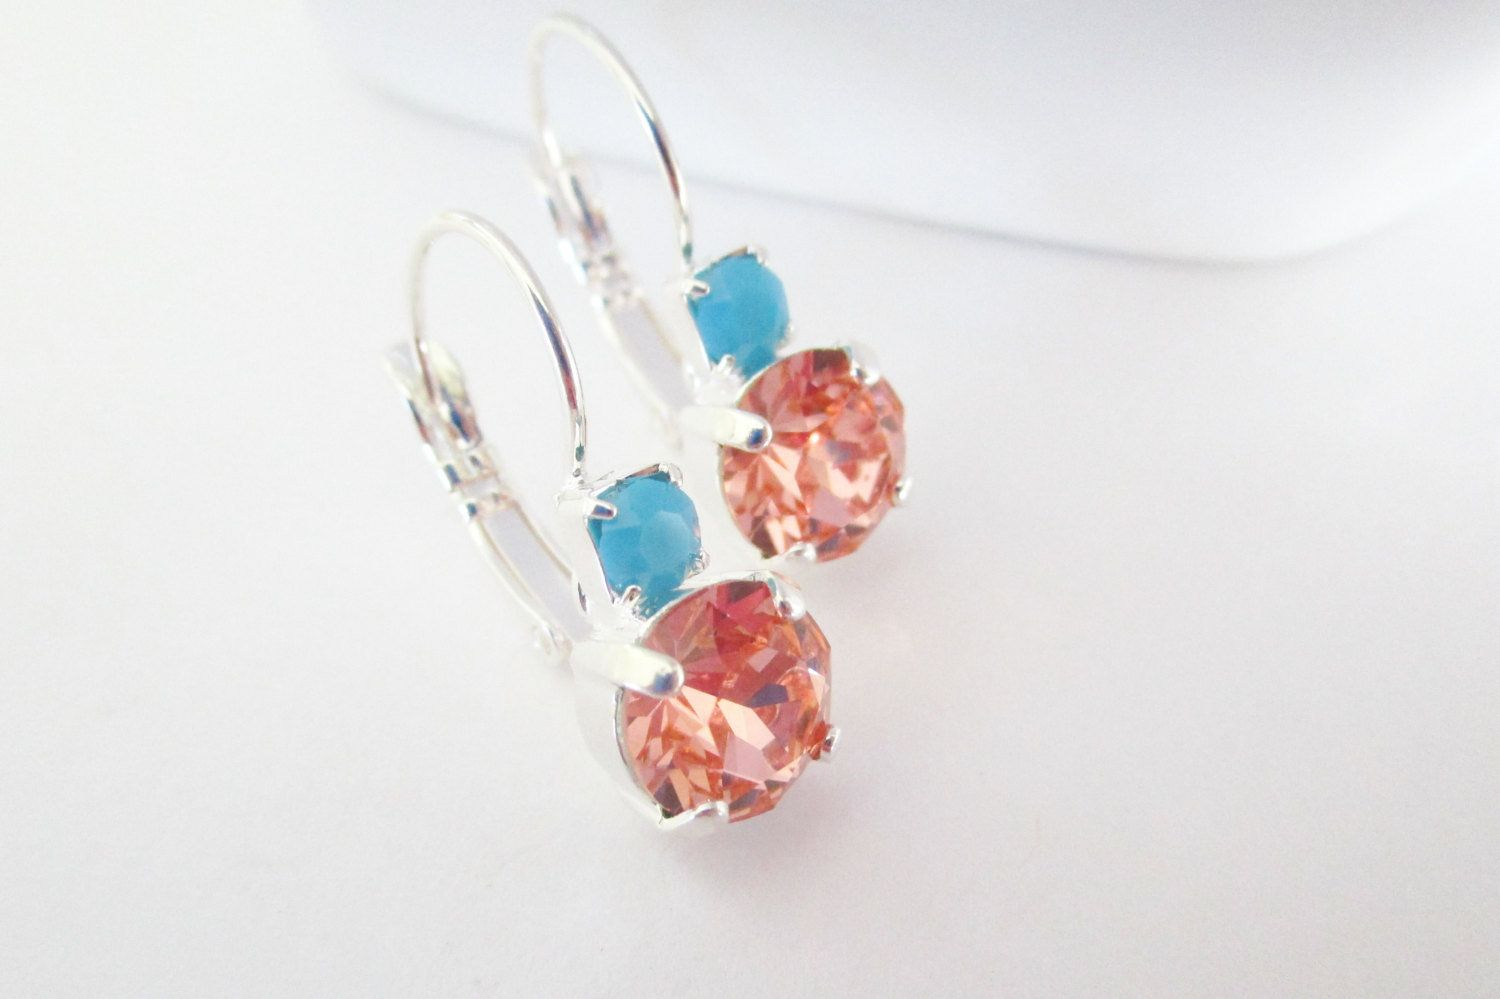 Items similar to Bridesmaids Earrings, Rose Peach, Turquoise, Coral Earrings, Swarovski Crystal, Beach Wedding Jewelry, Turquoise Earrings,Bridesmaid Set on Etsy